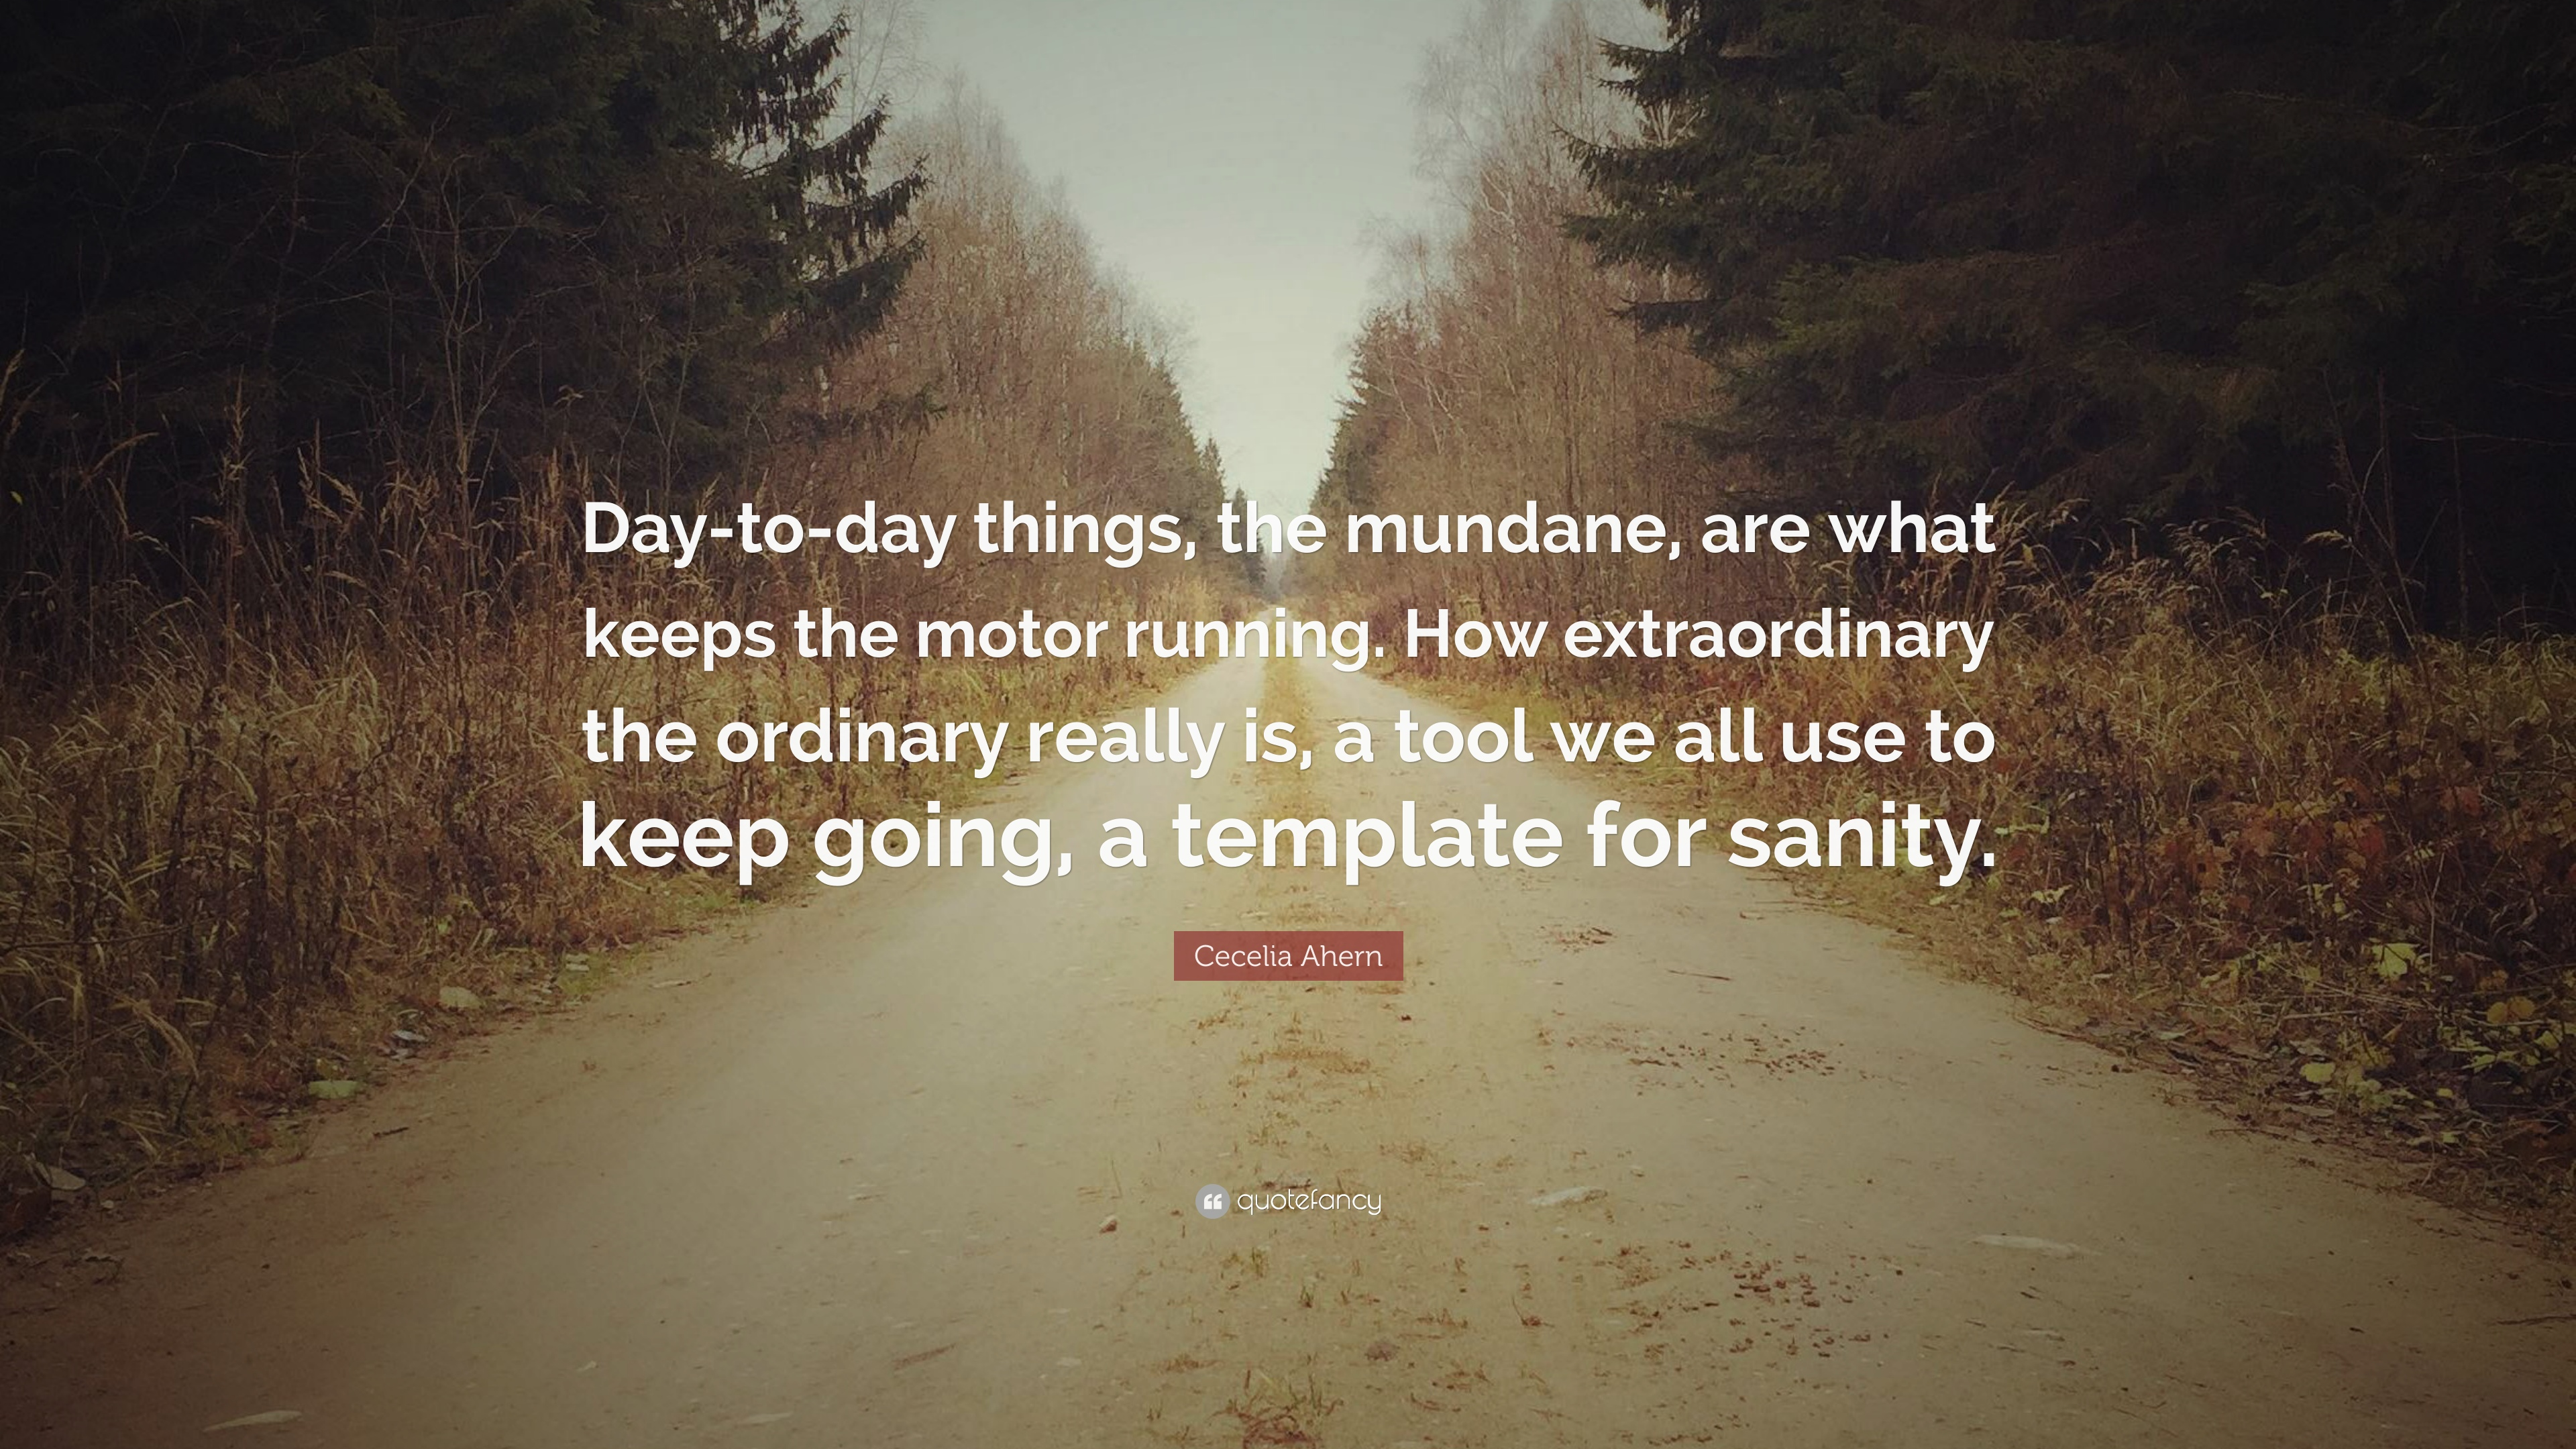 Cecelia ahern quote day to day things the mundane are